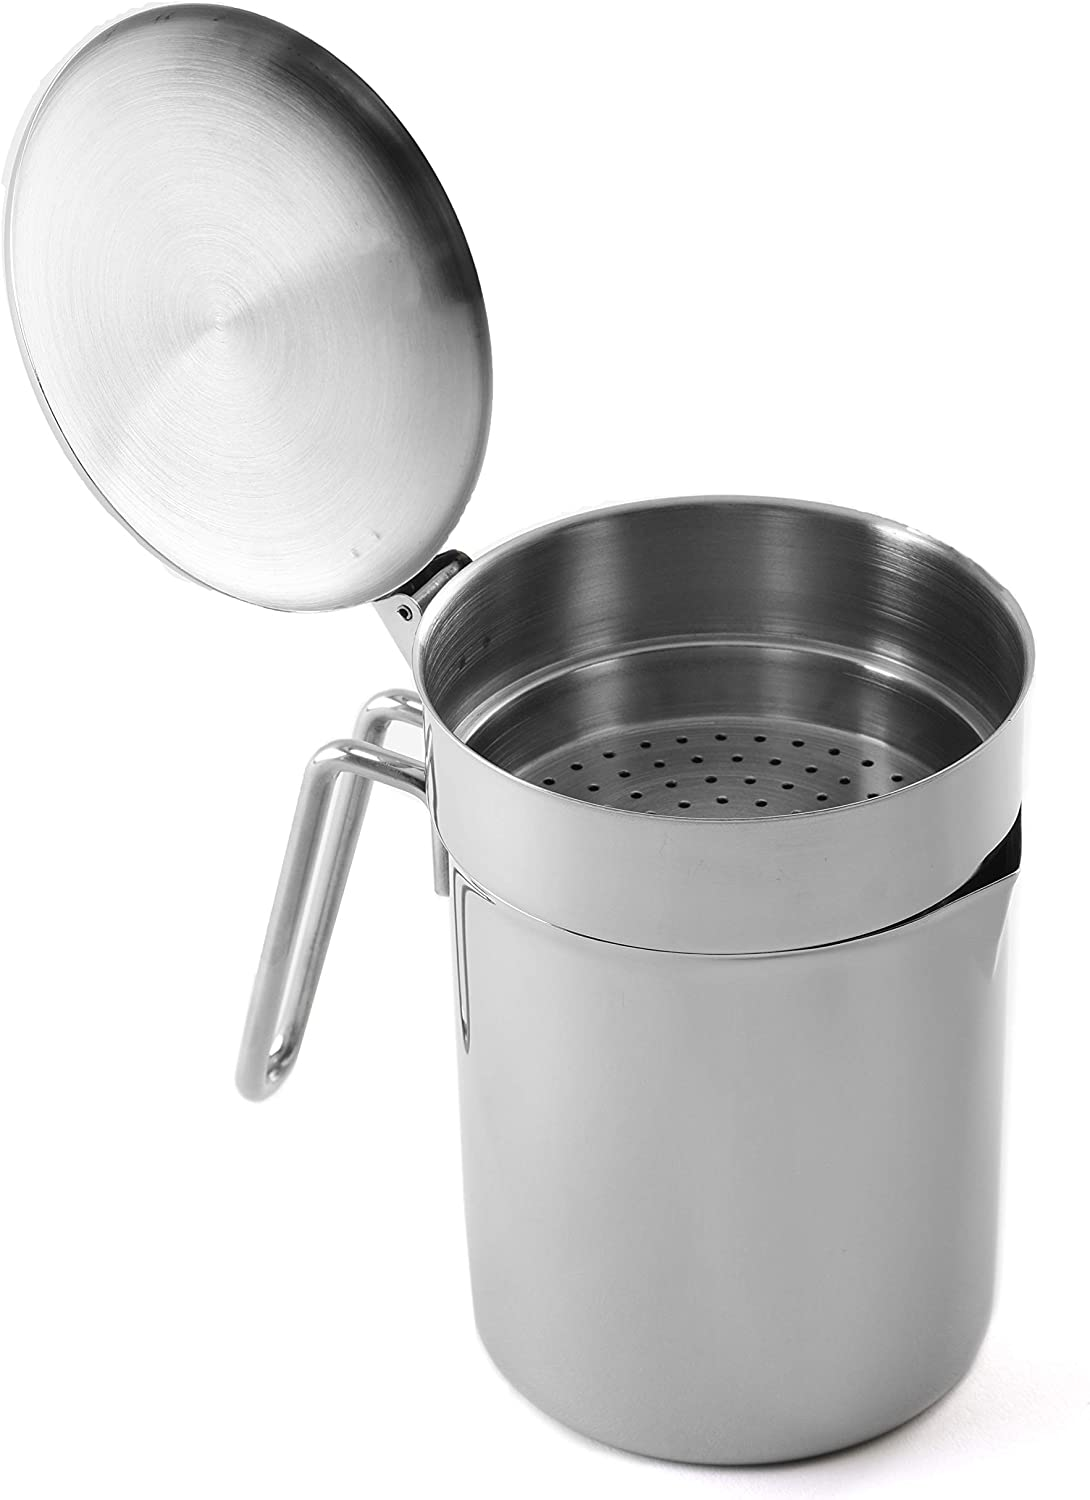 Norpro Stainless Steel Grease Catcher/Strainer, One Size, Silver